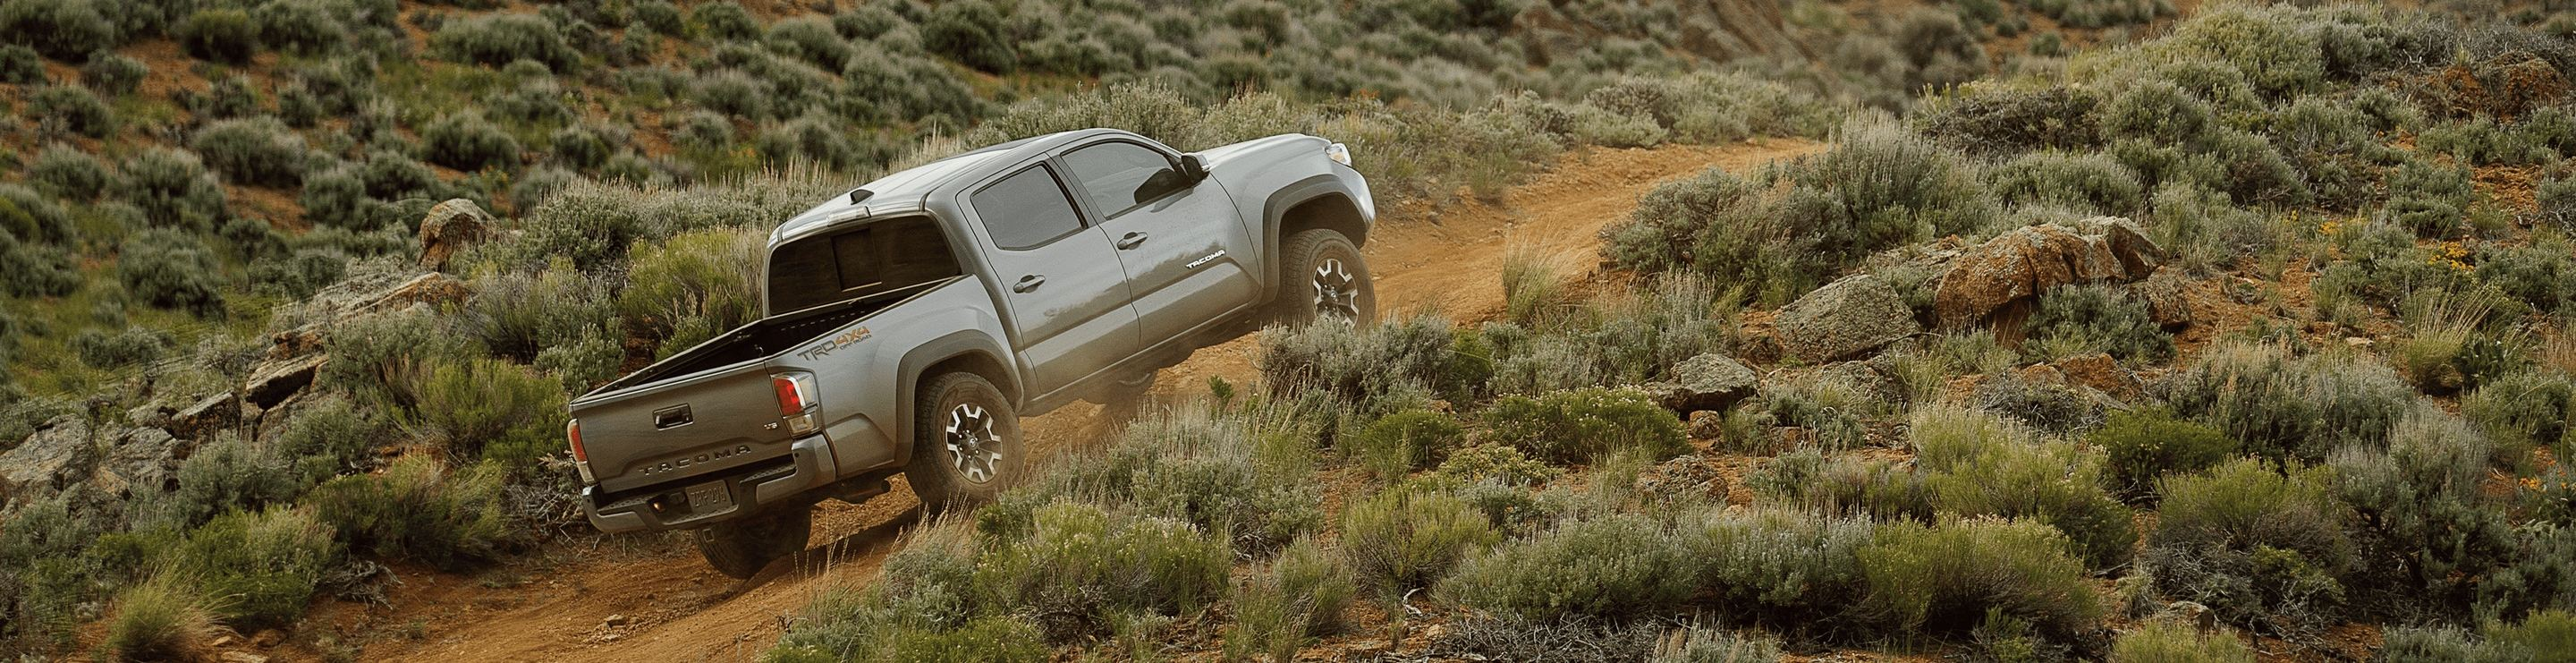 2020 Toyota Tacoma for Sale near Schaumburg, IL